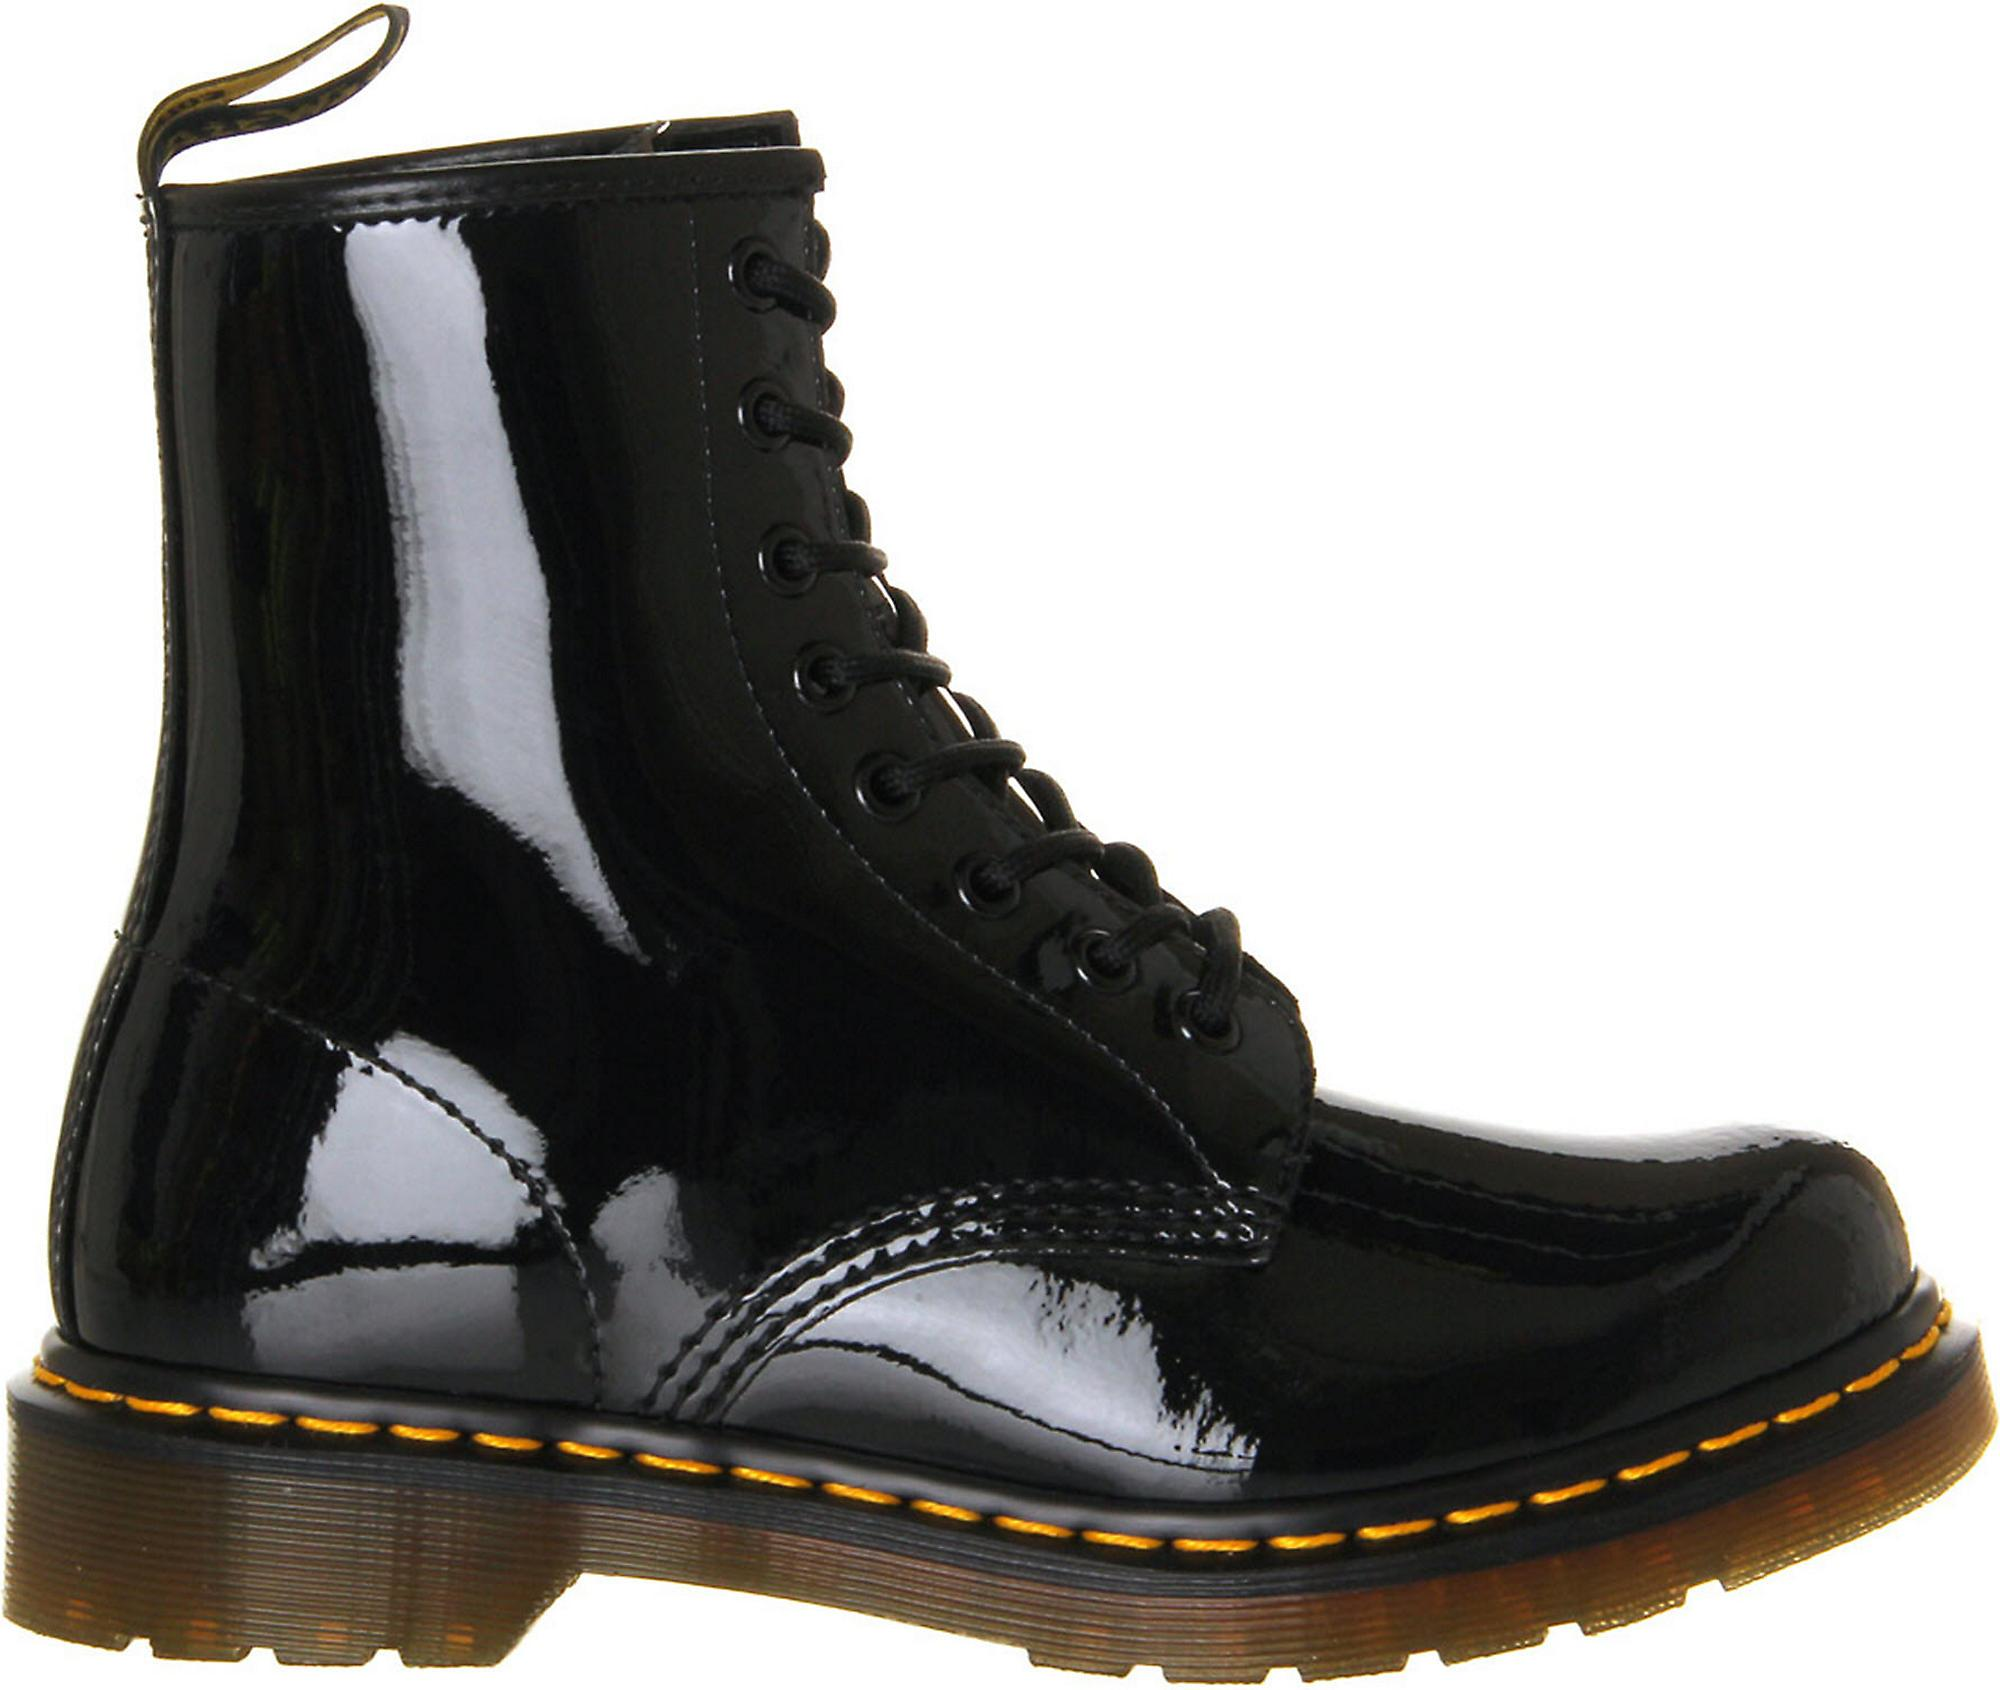 cde1c8b8cd8 Men's Black 1460 8-eye Patent Leather Boots